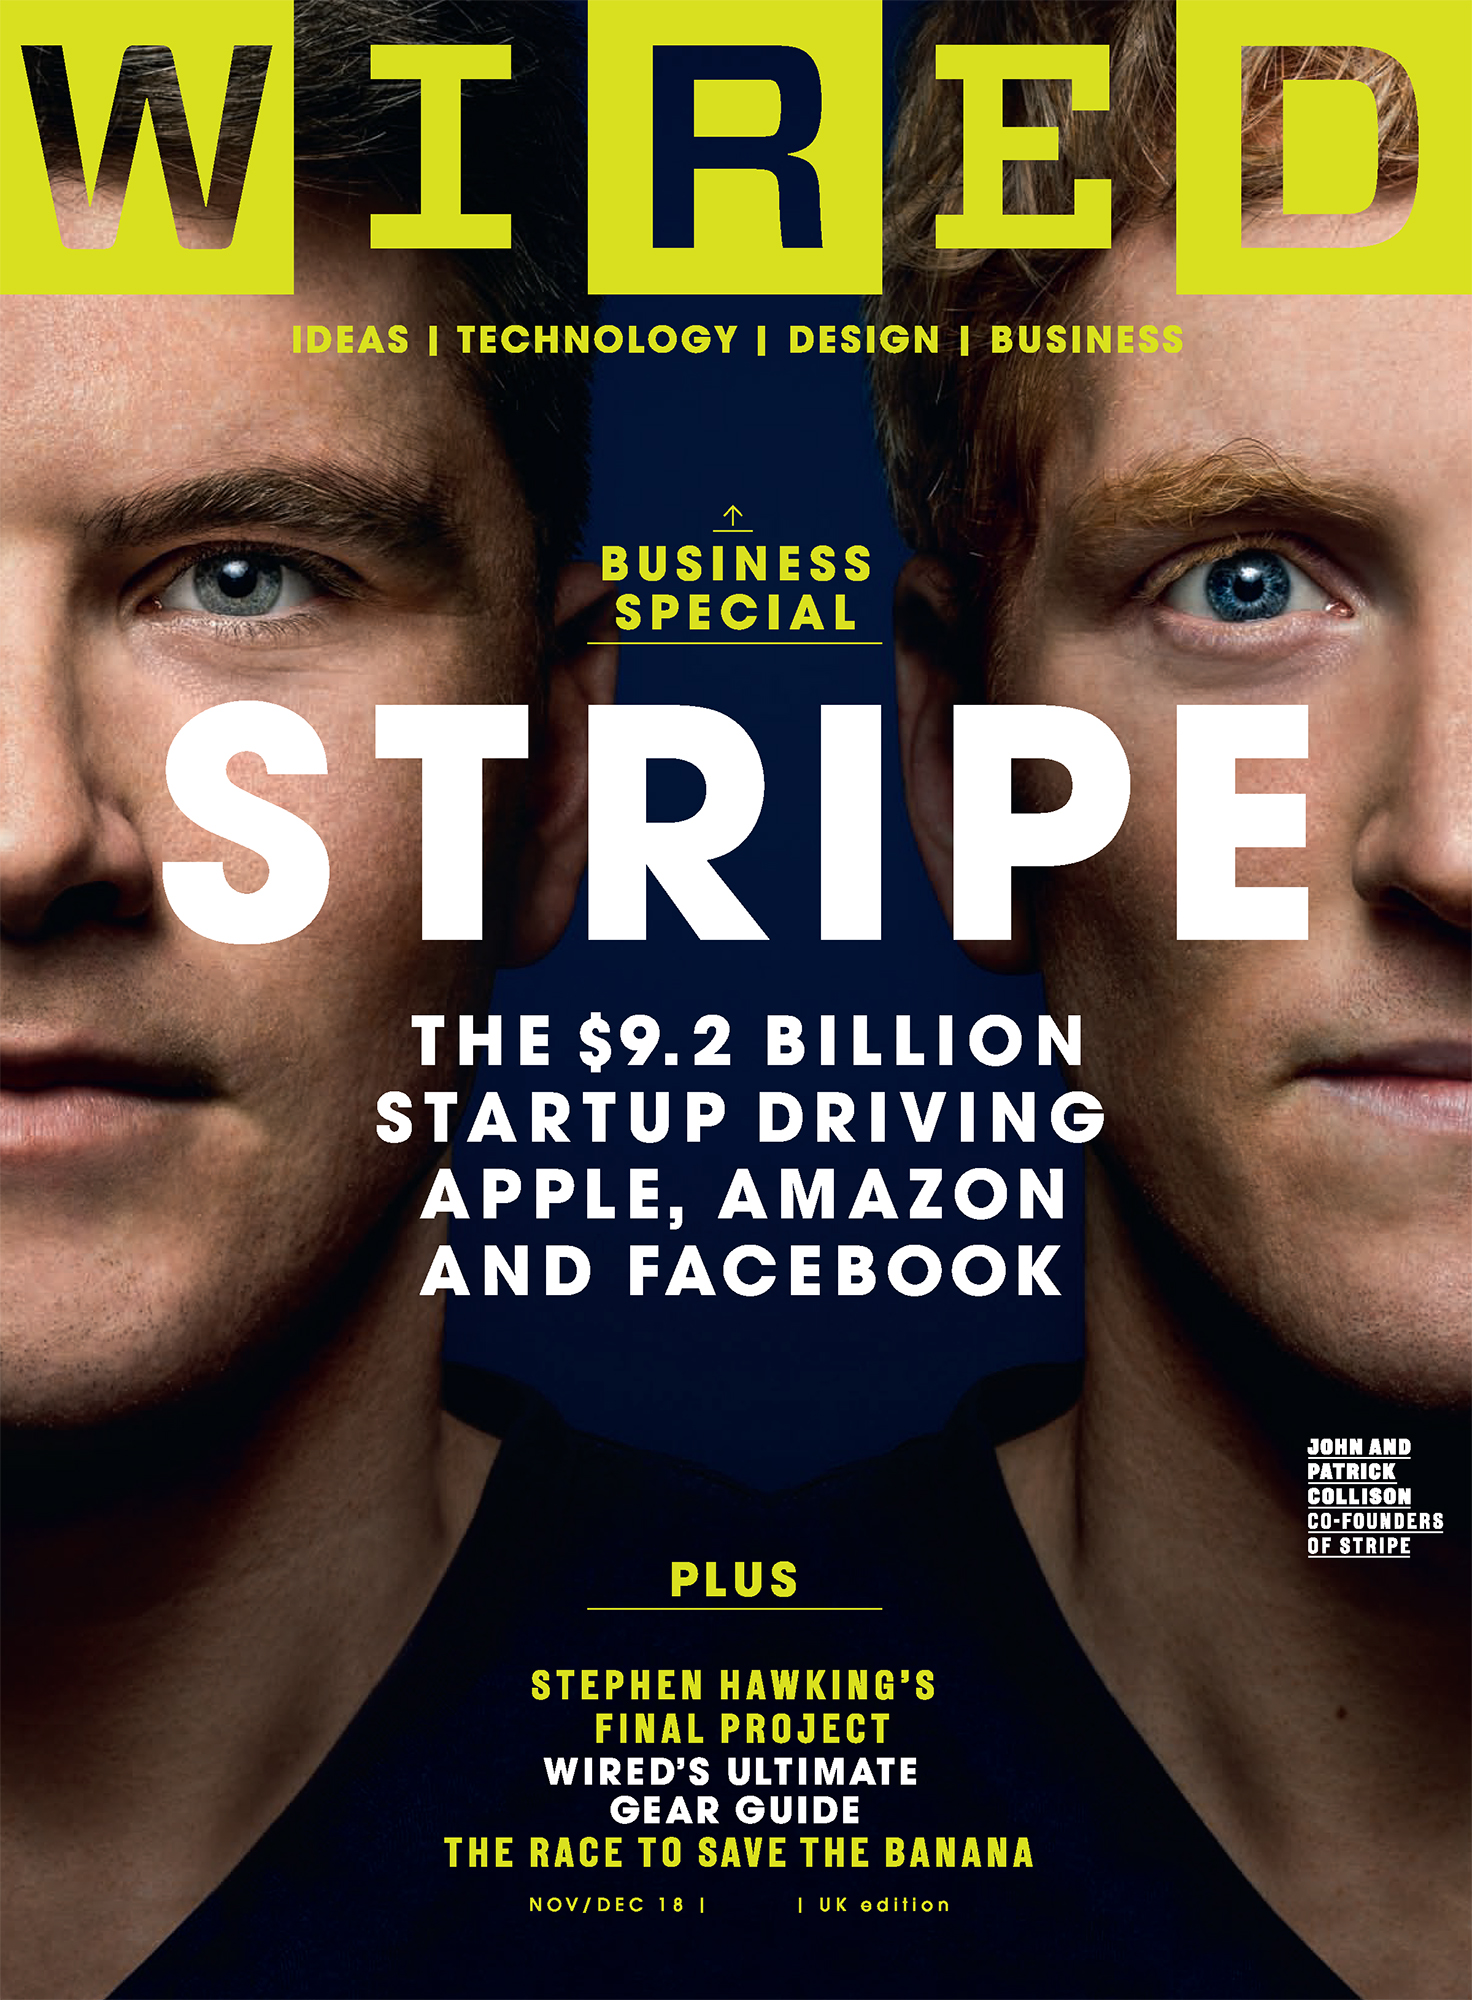 Wired Uk Cover, Stripe founders